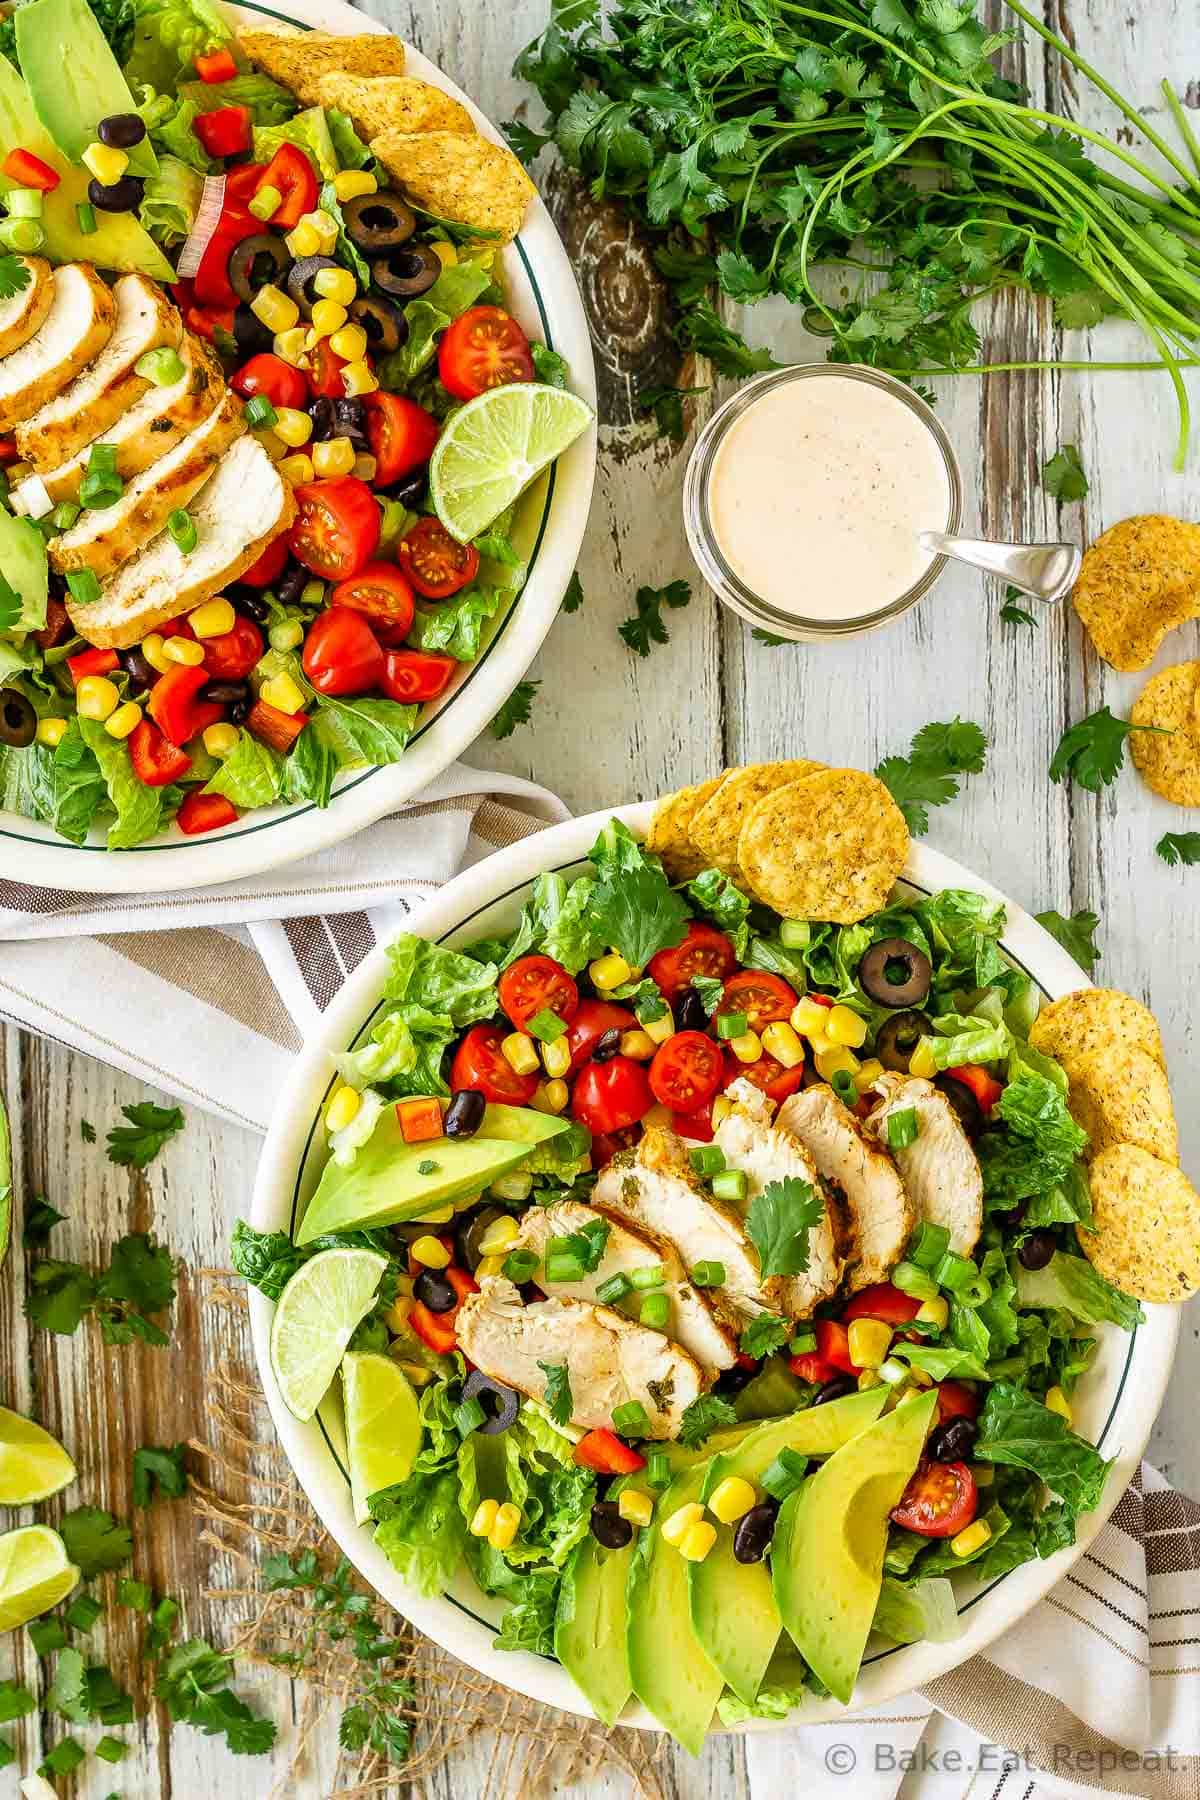 This chicken taco salad is one of our favourite meals - juicy, grilled cilantro lime chicken tossed with salad, tortilla chips and tasty taco ranch dressing!